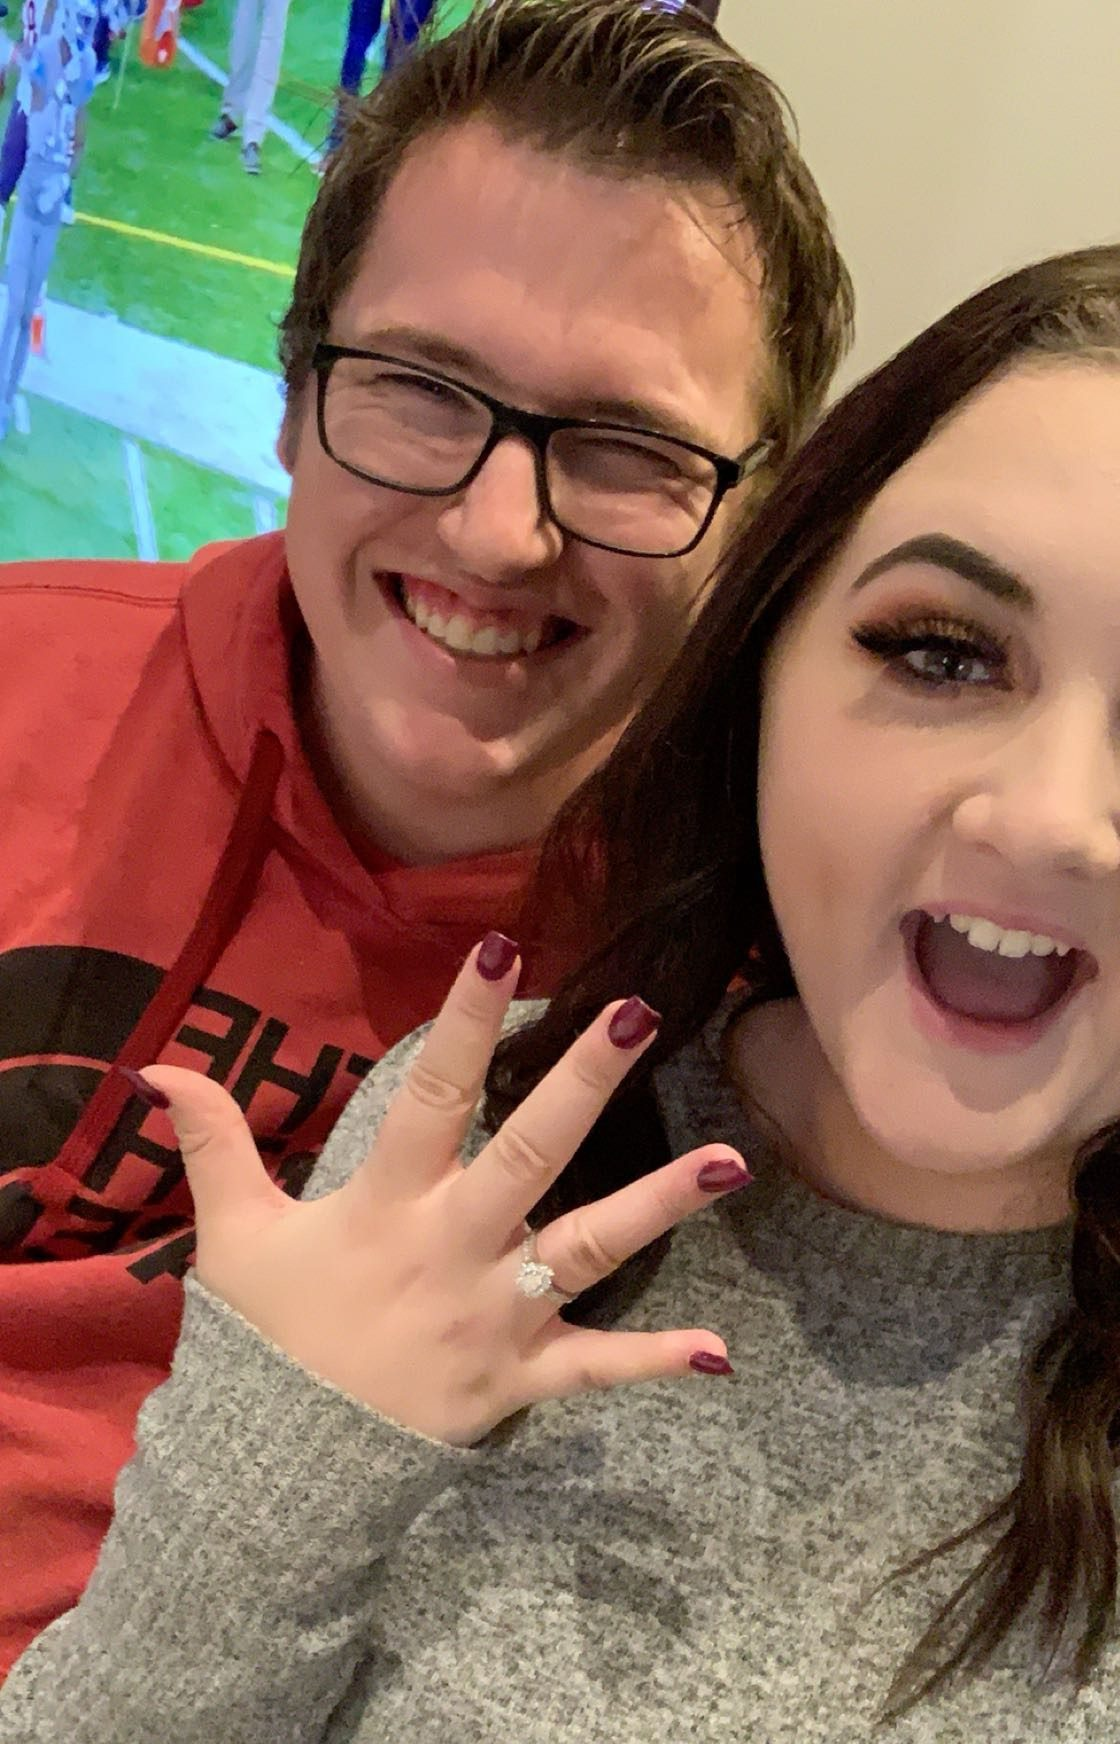 Engagement Proposal Ideas in His parents house